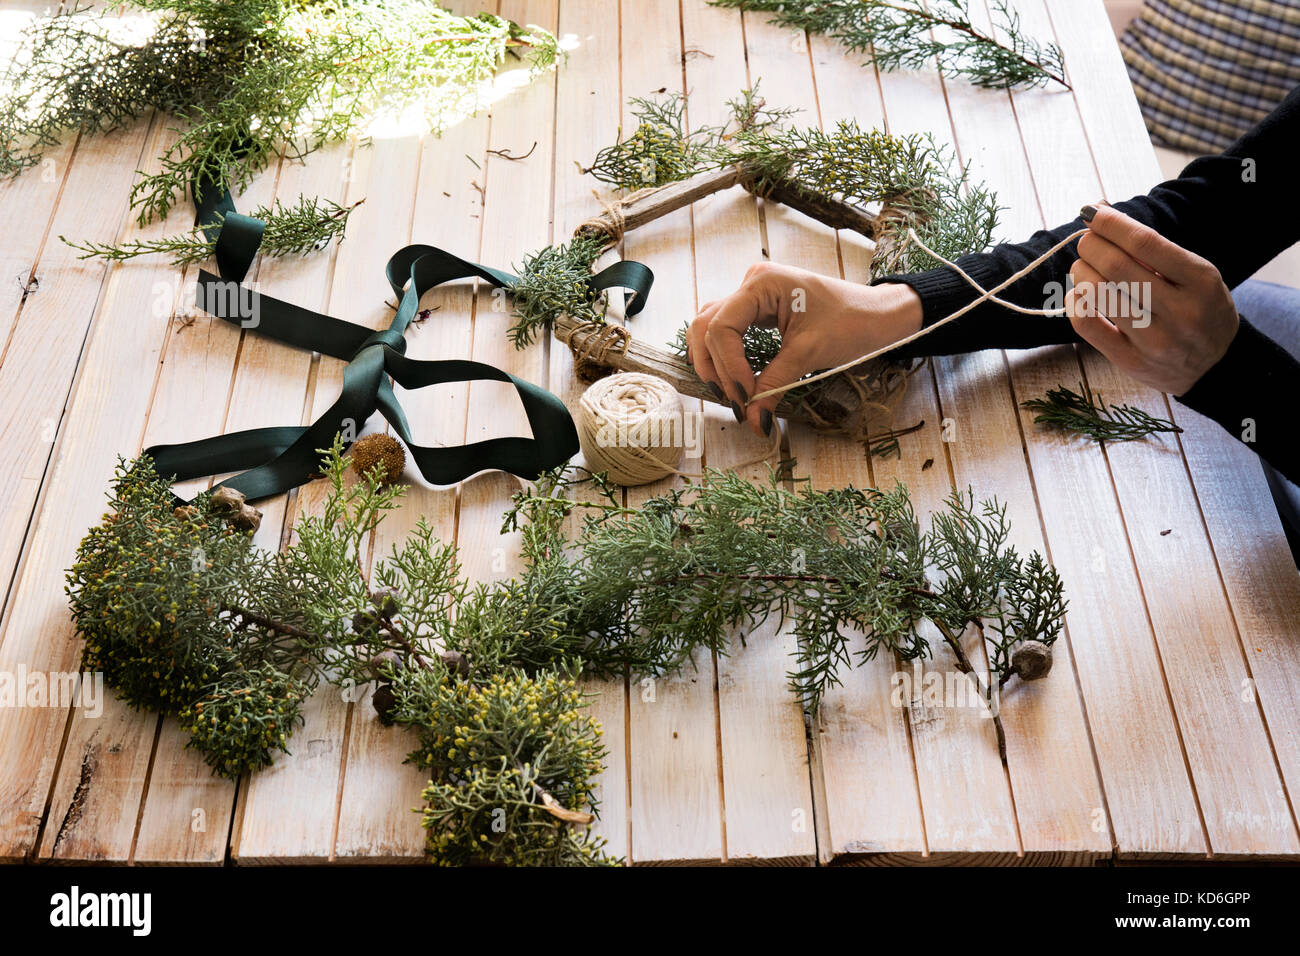 Florist at work: Creating a wooden wreath with red barries, surrounded by the arts and crafts. - Stock Image